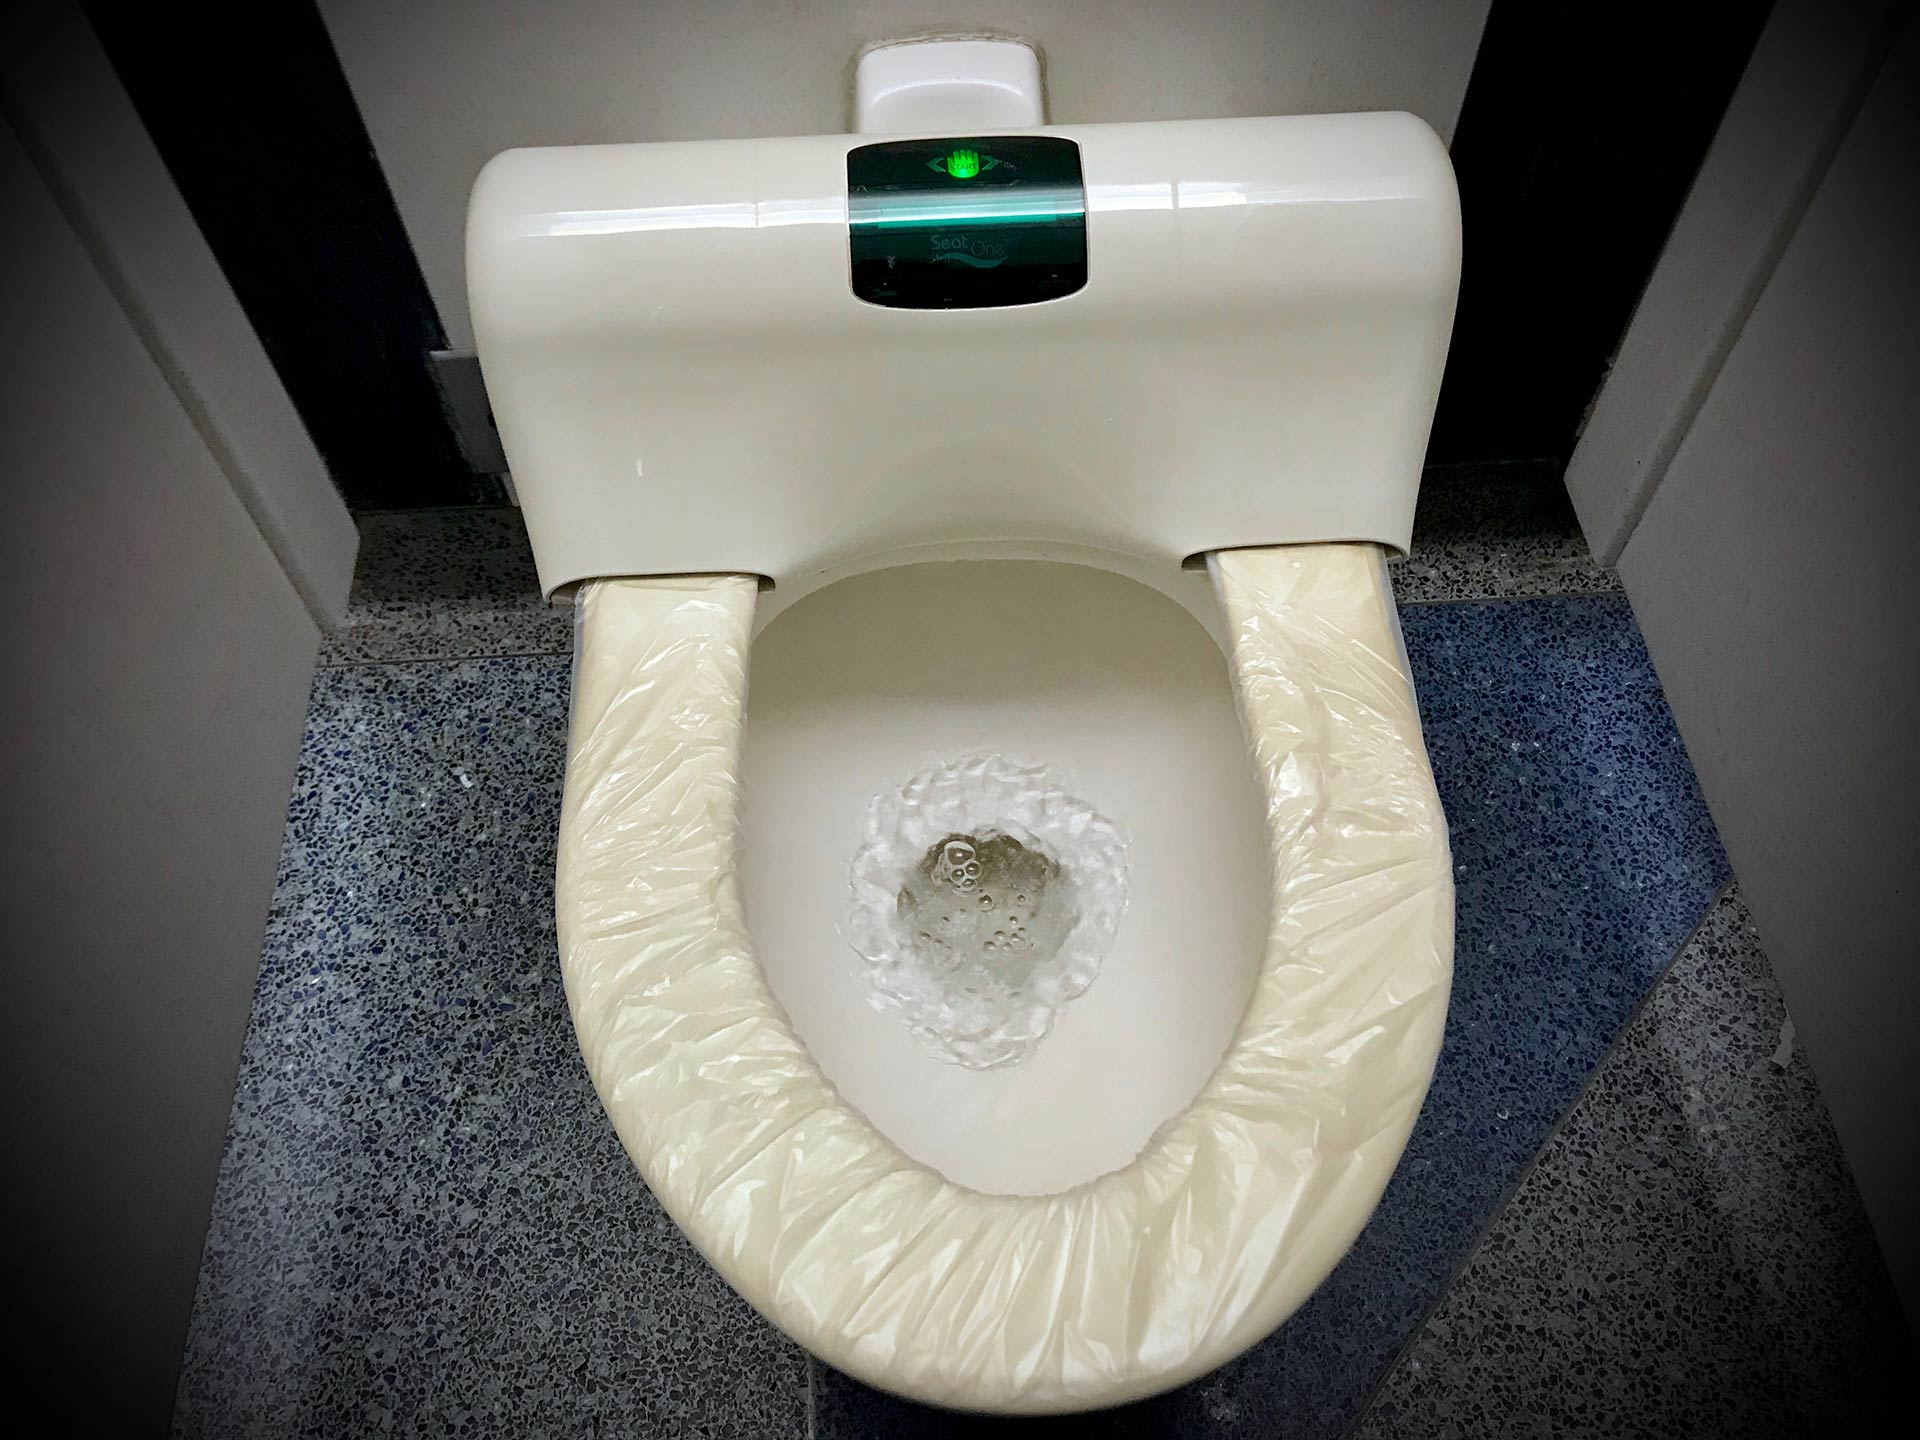 Twitter reacts to post about working conditions and whites only toilets